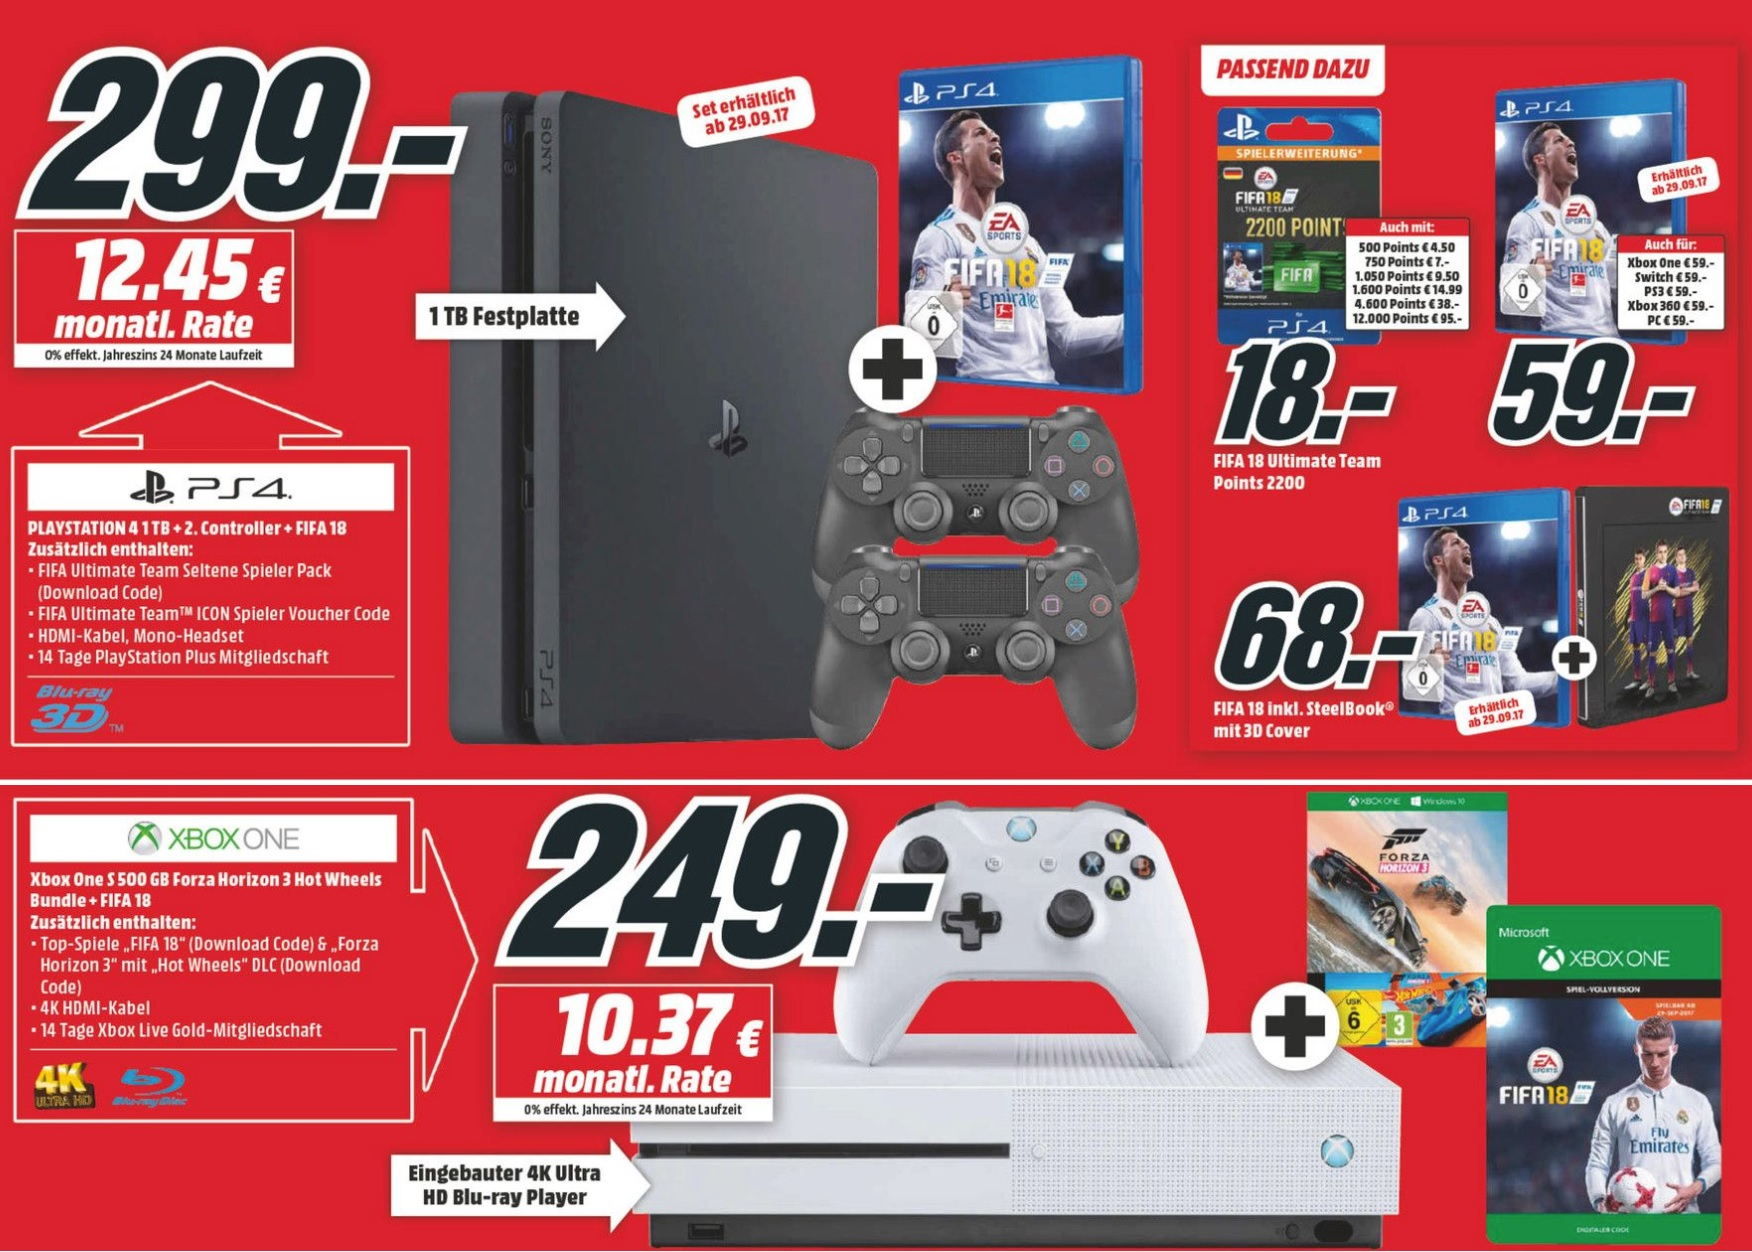 media markt prospekt kw 38 39 fifa 18 im konsolen bundle. Black Bedroom Furniture Sets. Home Design Ideas